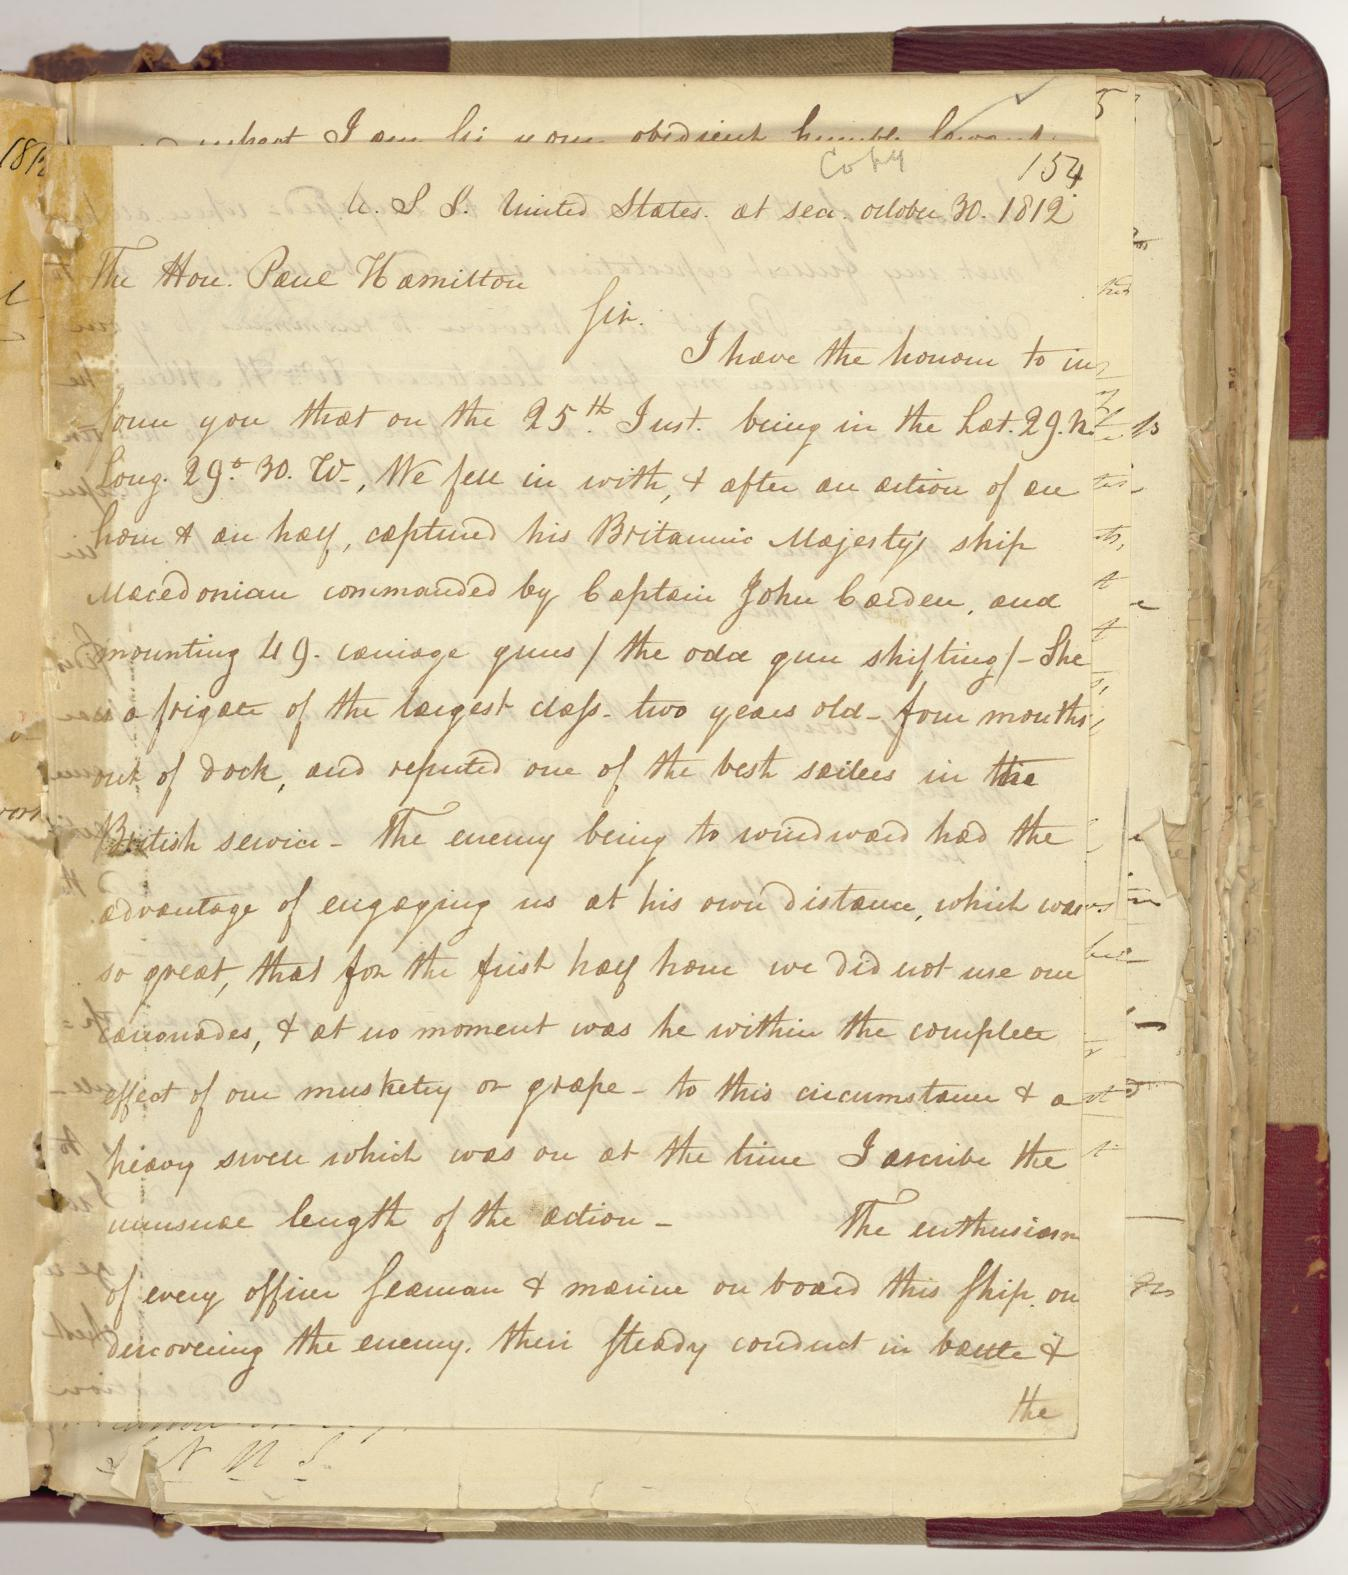 Letter from Stephen Decatur to Paul Hamilton NARA_resize